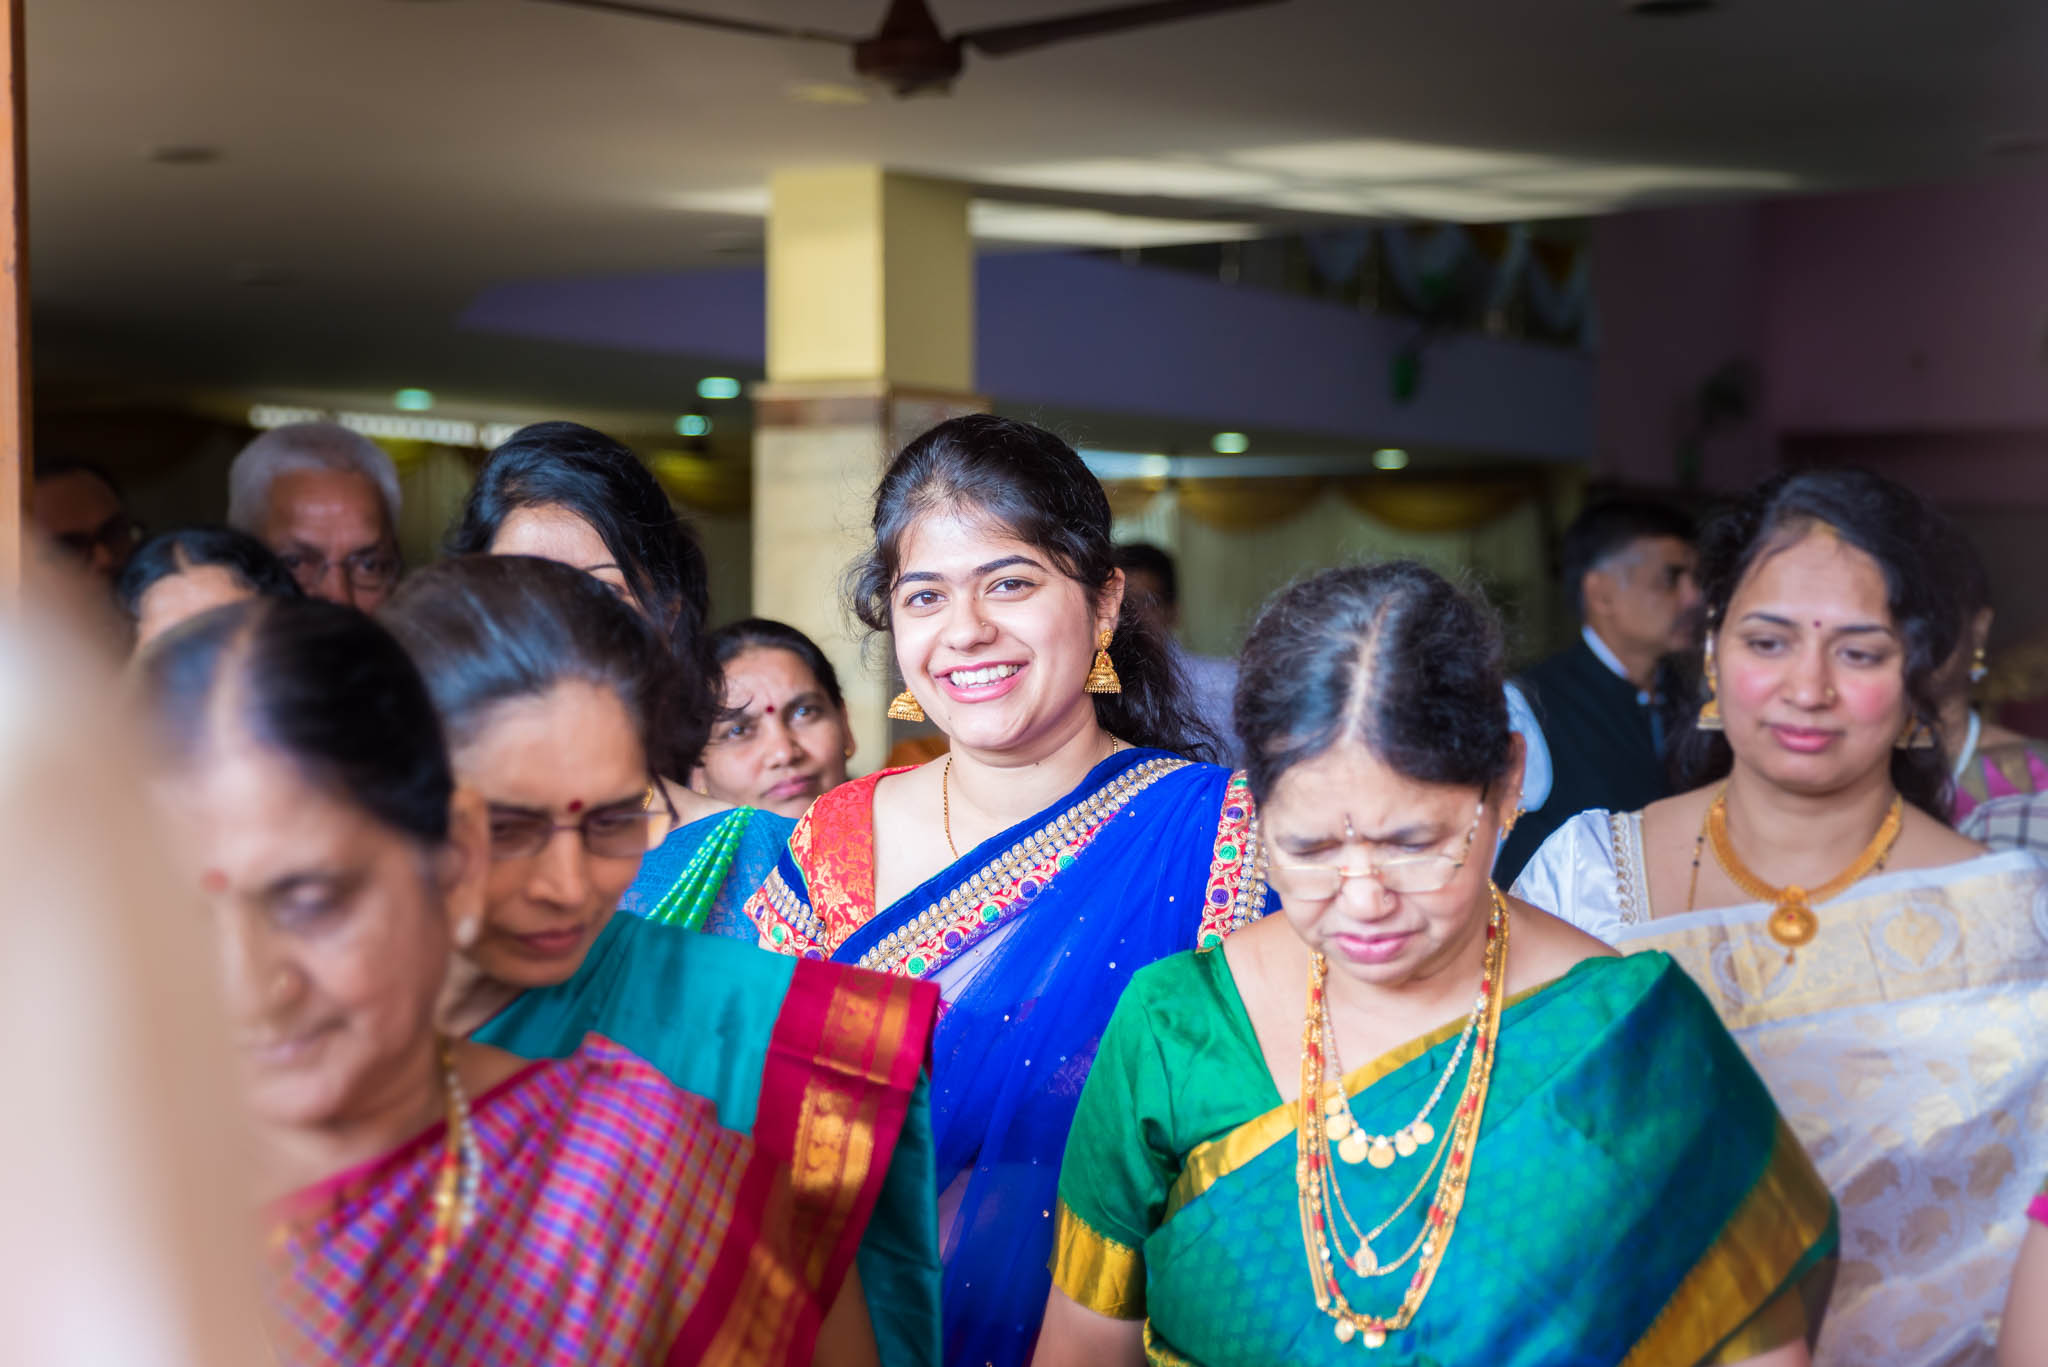 WhatKnot-Candid-Wedding-Photography-Mumbai-Bangalore-130